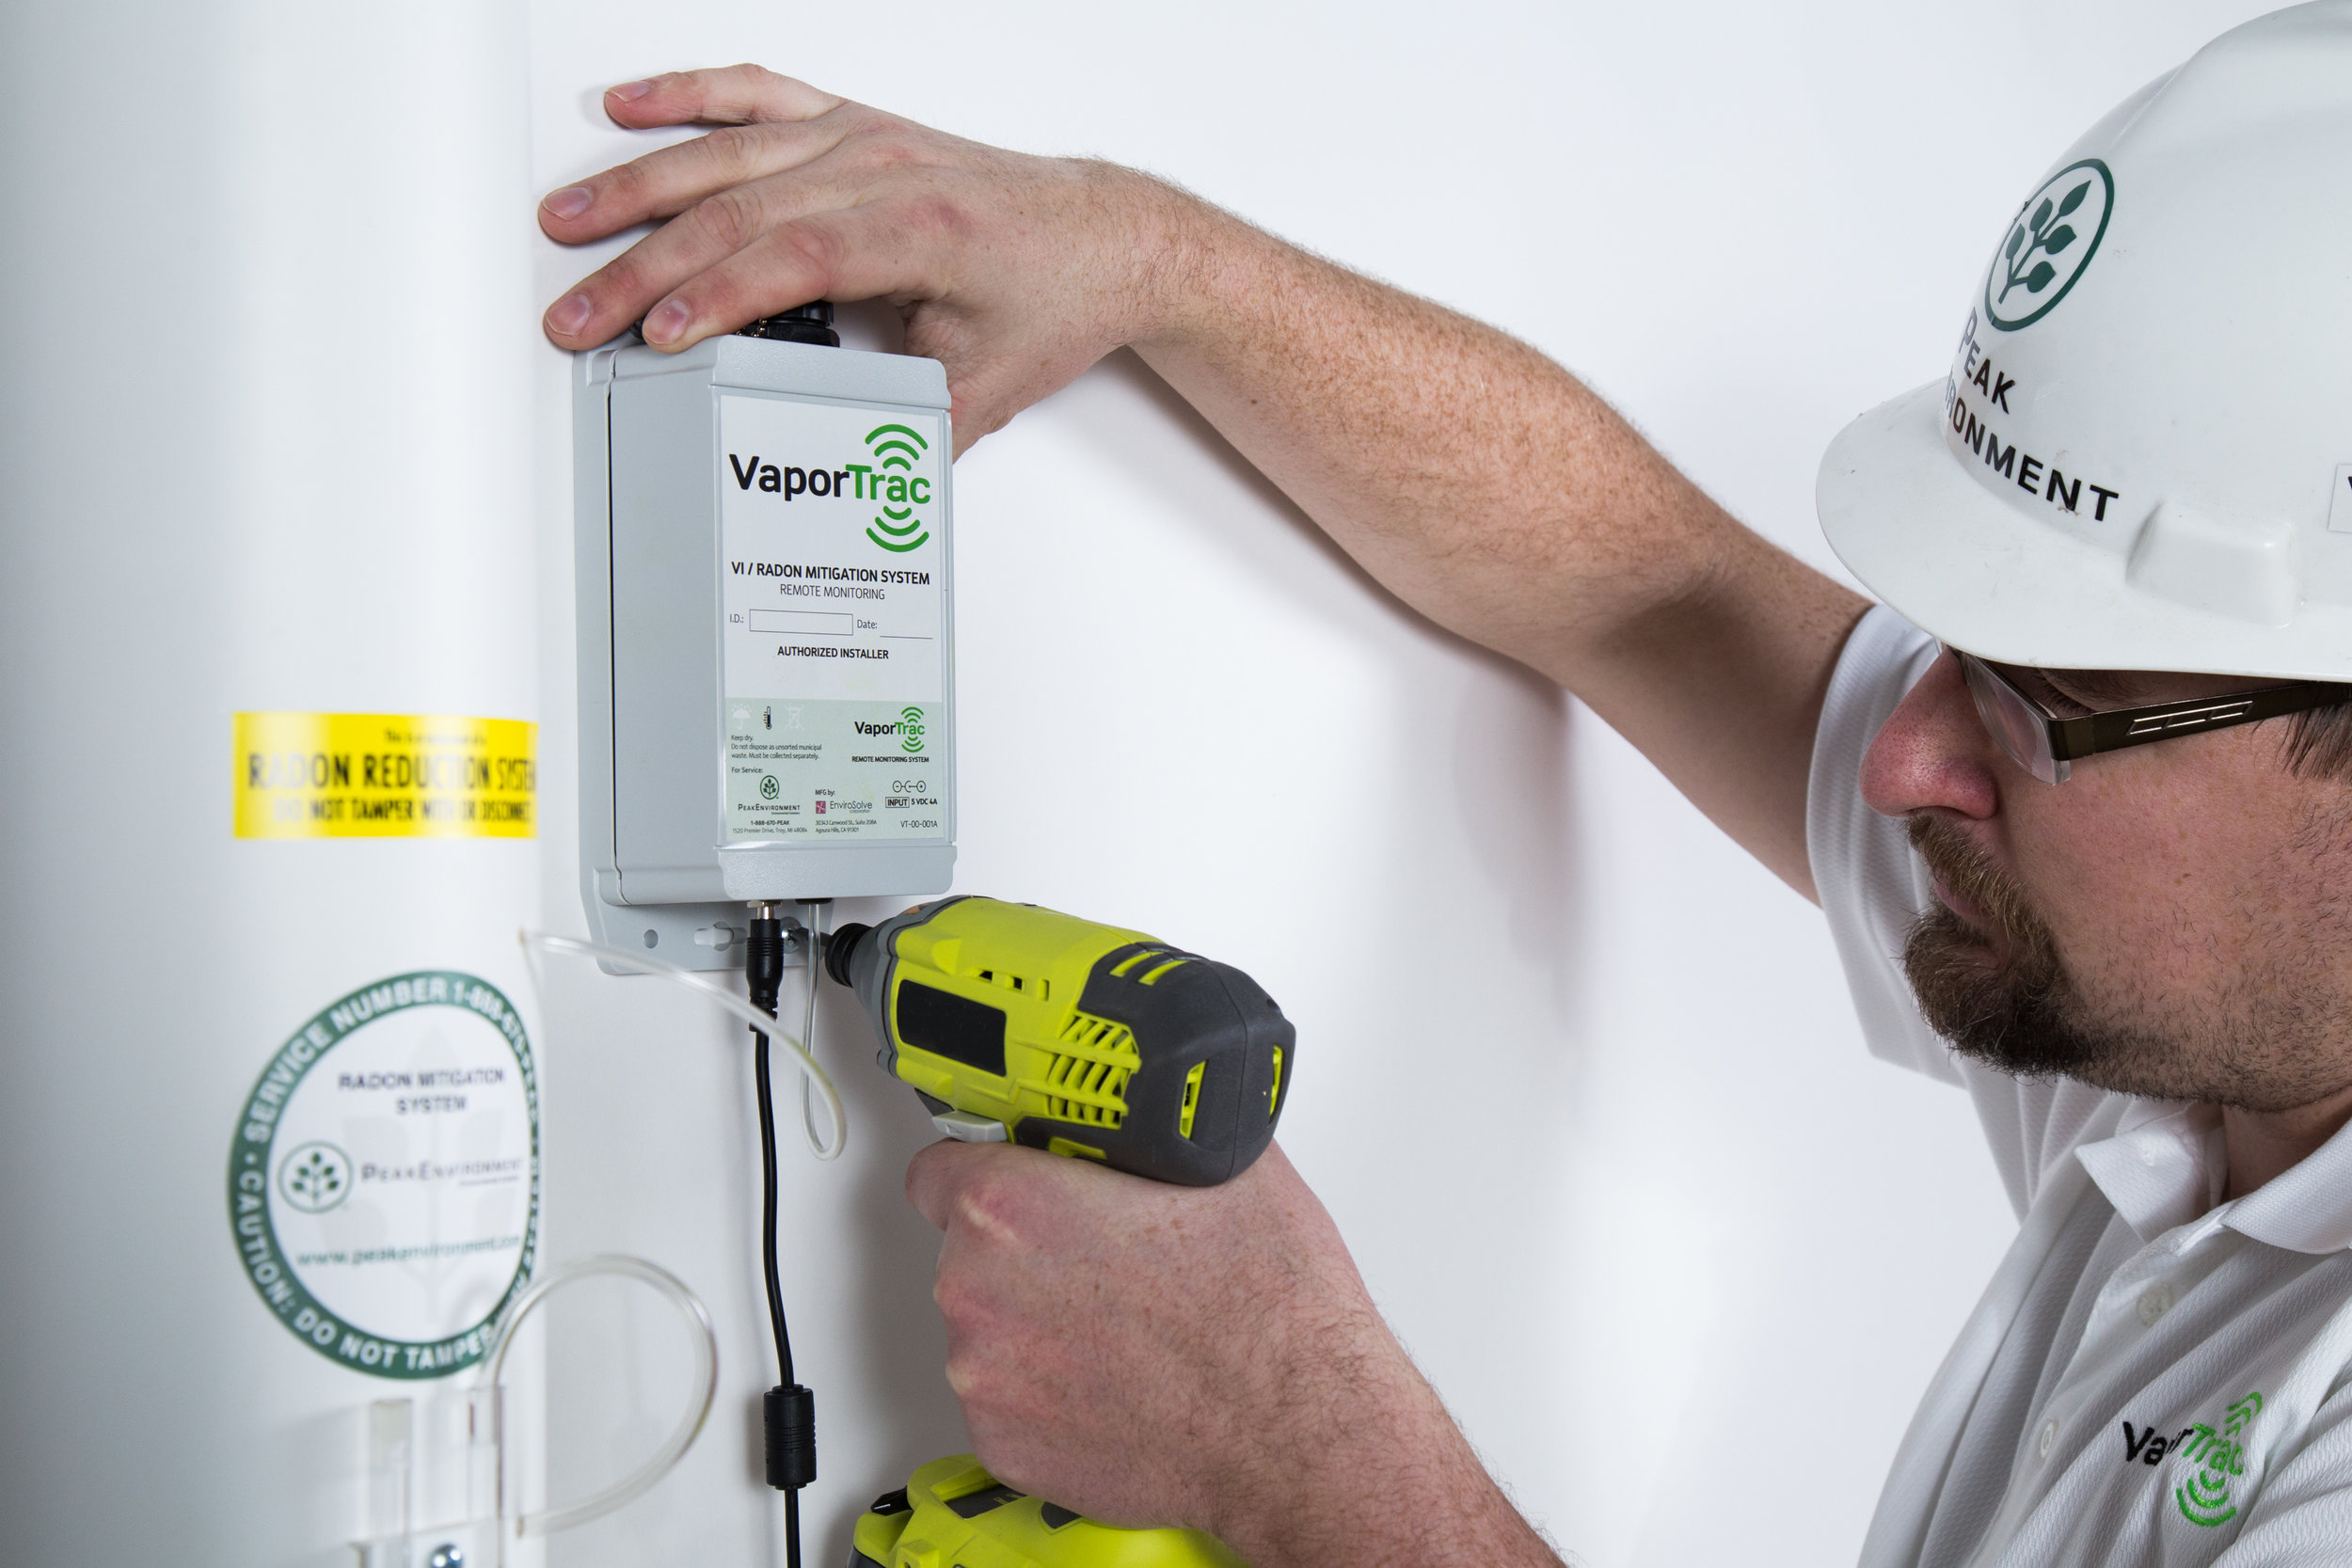 Become an authorized dealer - Prospective retailers and installers are invited to complete our contact form below for consideration. VaporTrac is an incredible opportunity for radon and vapor intrusion mitigators to expand their technology and business capabilities.